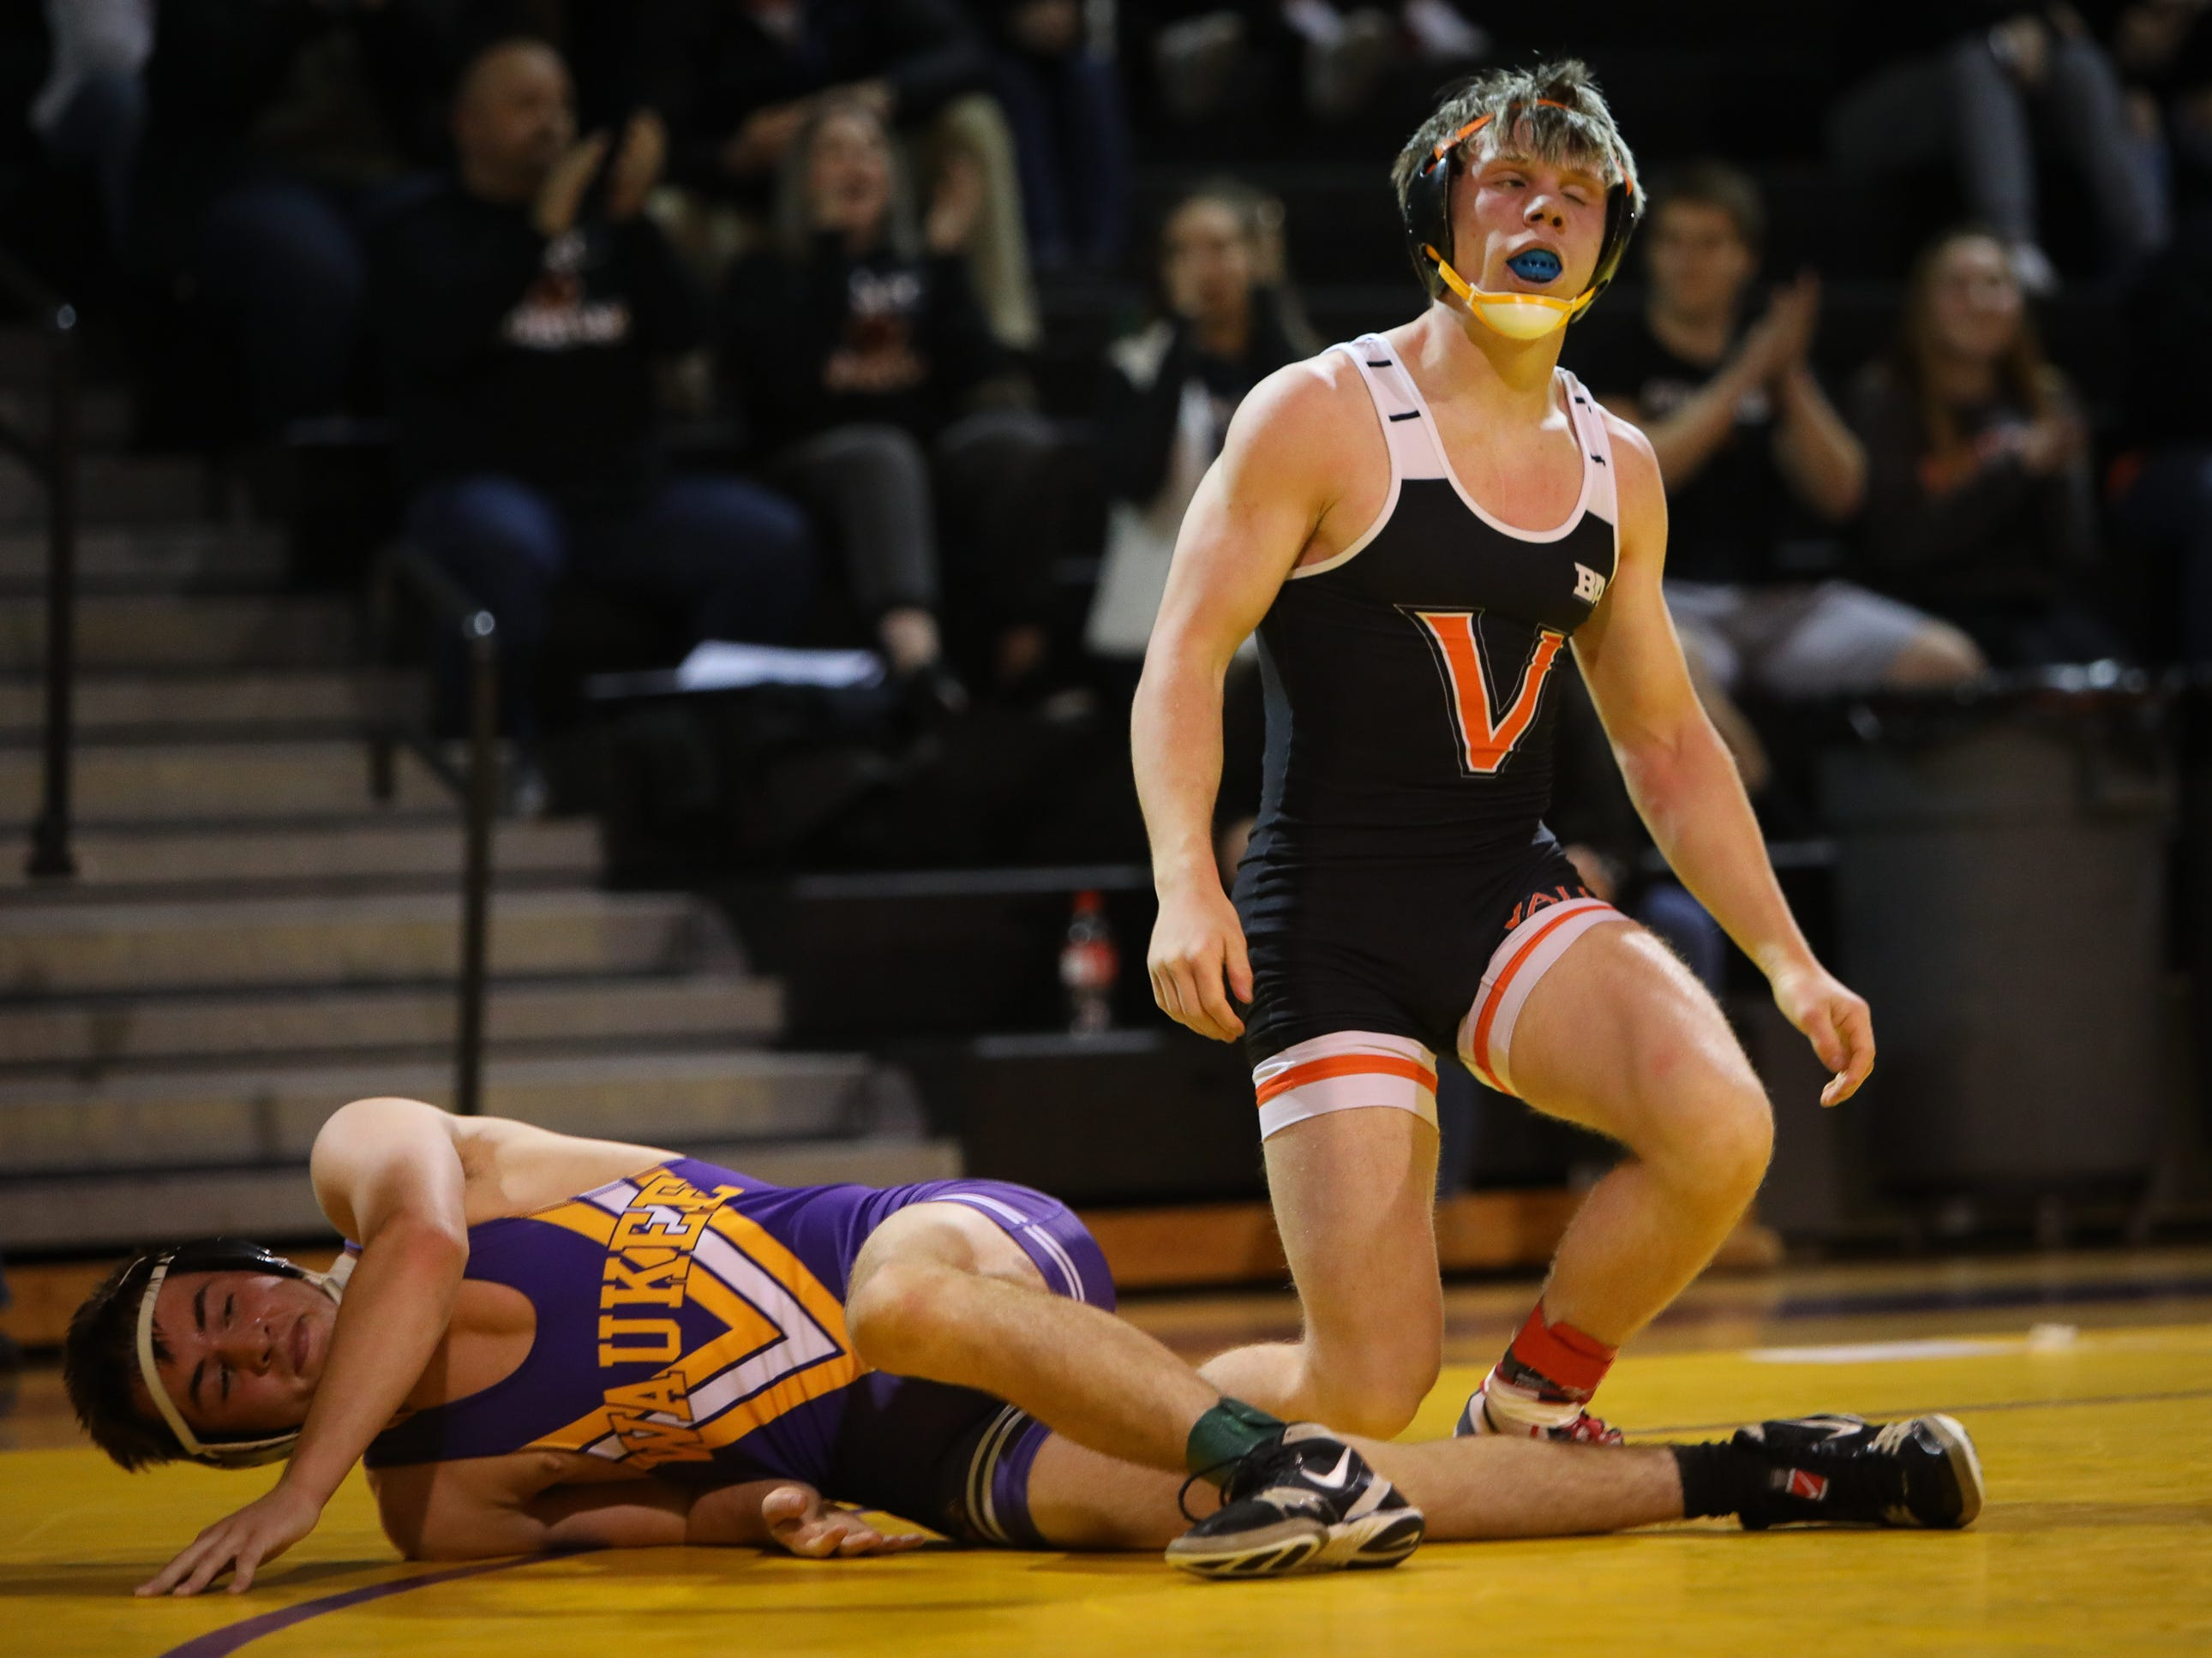 Valley freshman Caleb Corbin emerges victorious over Waukee senior Mason Seifried in the 152-weight class during a high school wrestling meet between the Valley Tigers and the Waukee Warriors at Waukee High School on Dec. 20, 2018 in Waukee, Iowa.